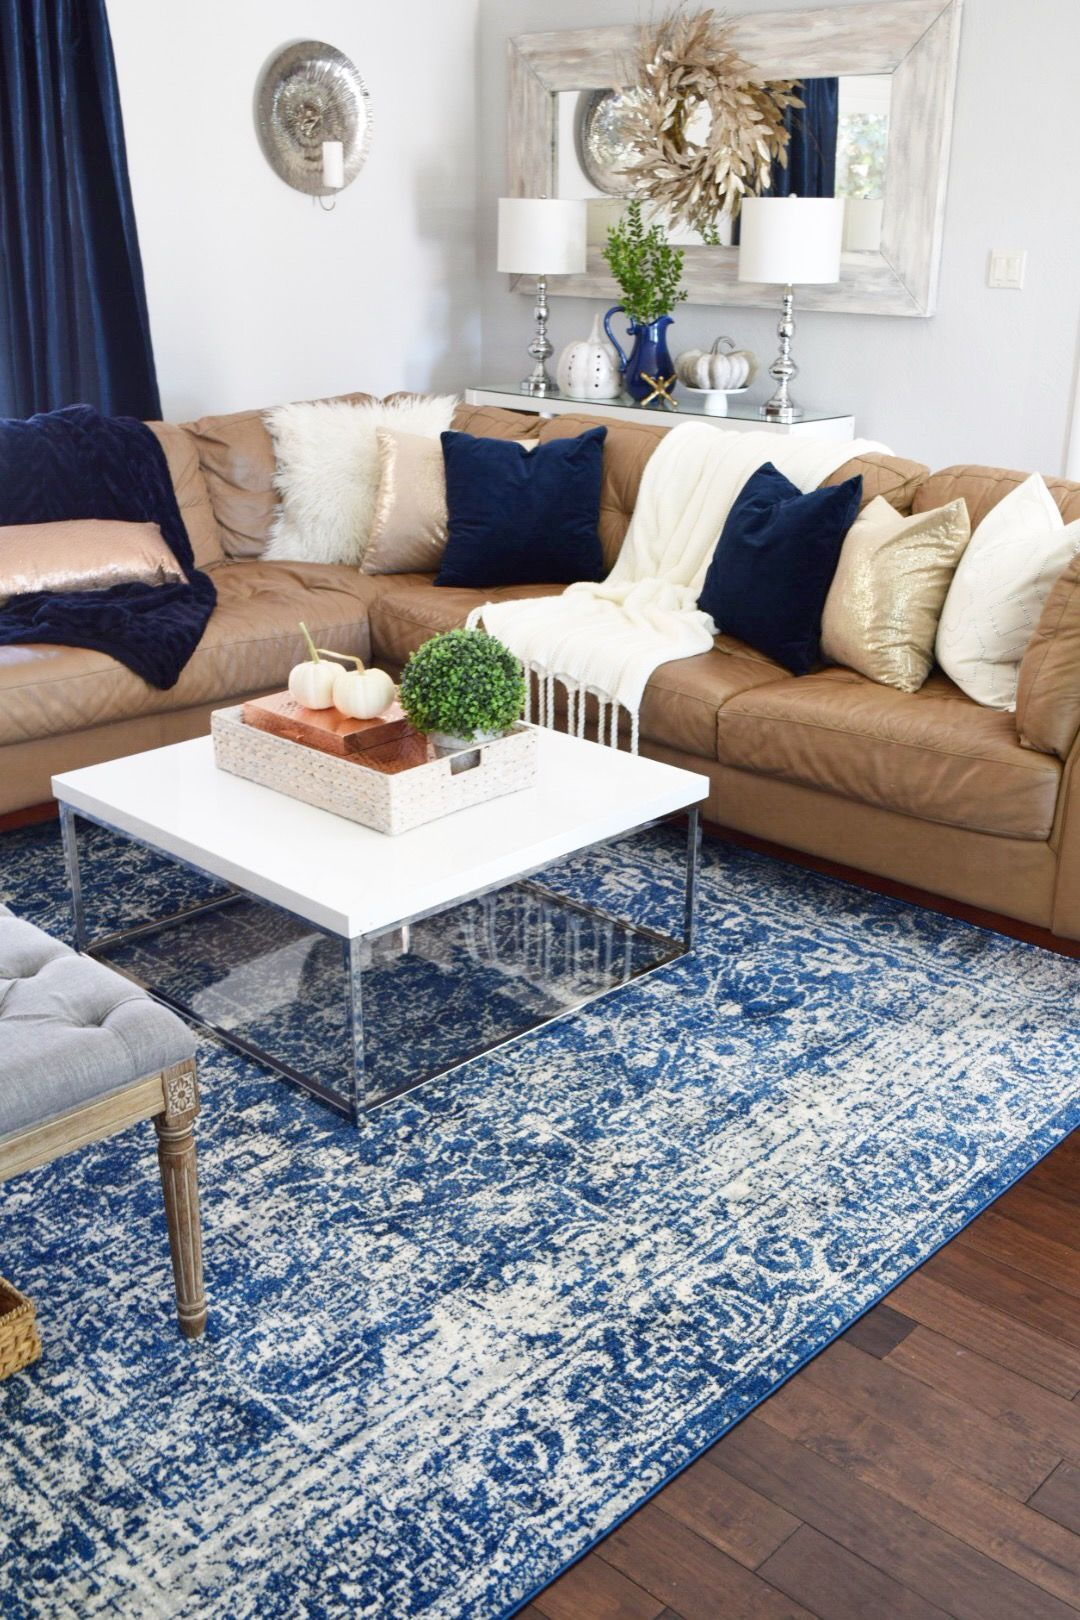 Simple ways to brighten your home for winter house and - Decorating with area rugs ...